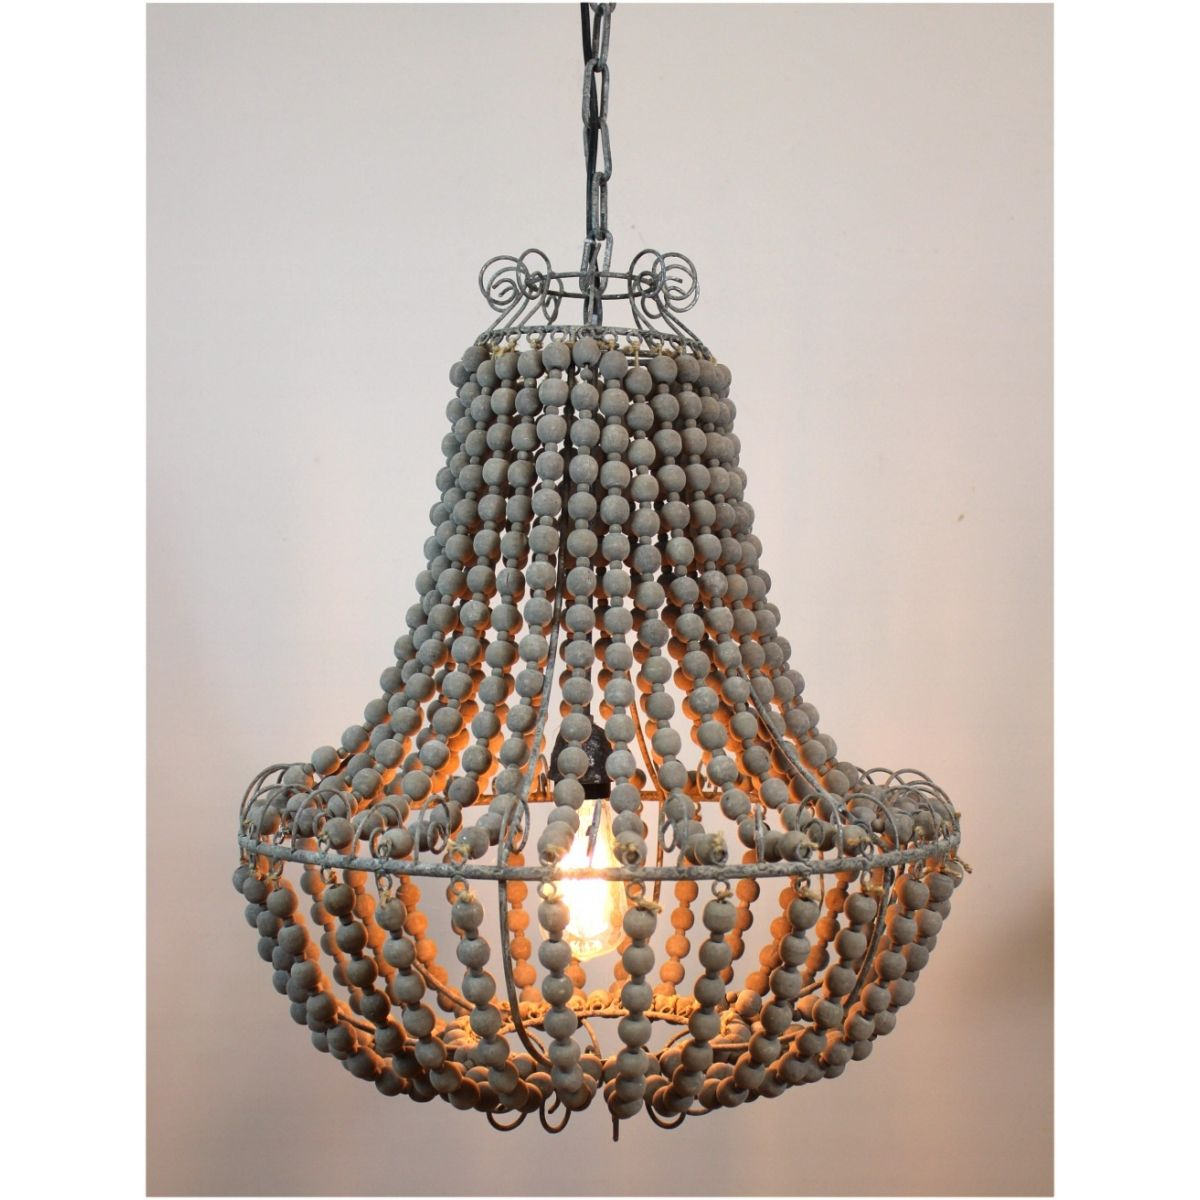 Aged wooden beaded big chandelier hand made lighting for Wood pendant chandelier